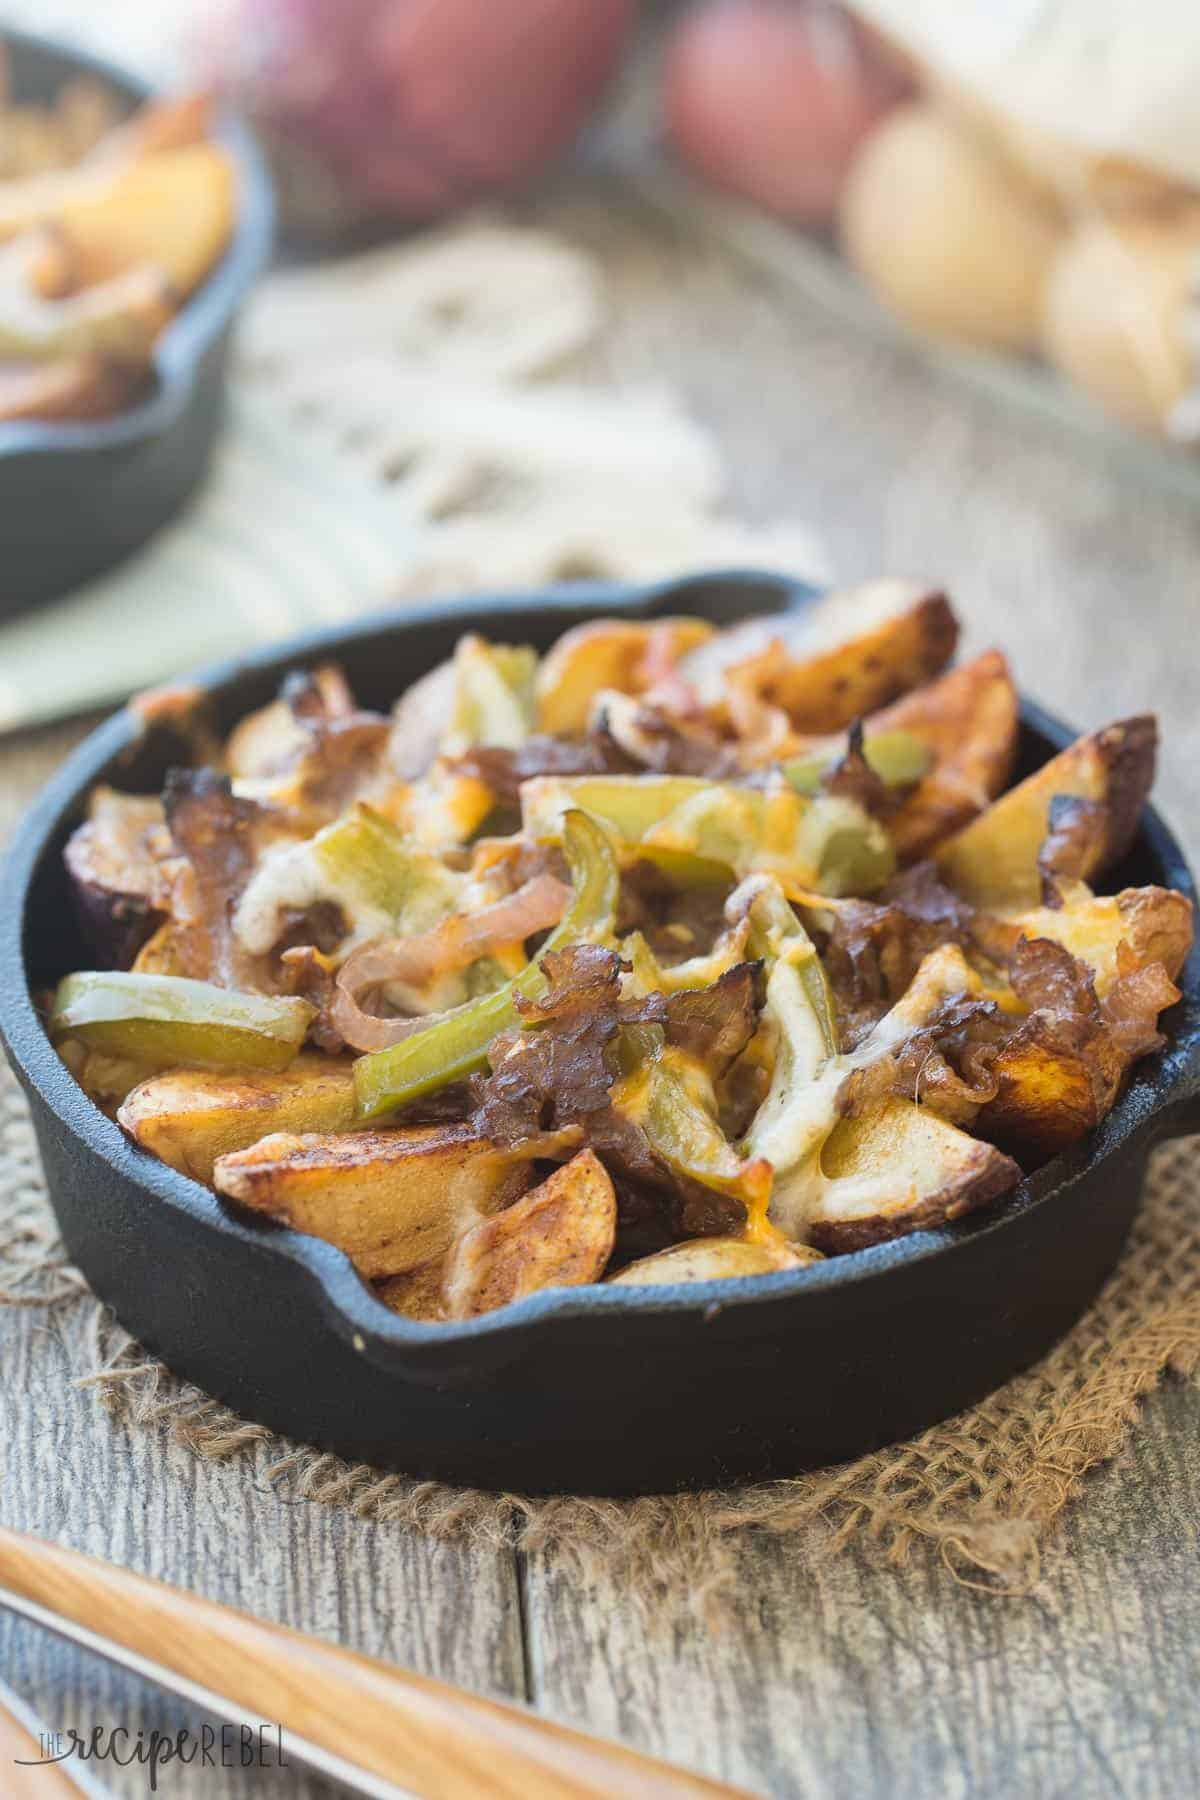 Seasoned crispy potato wedges topped with sauteed peppers, onions, roast beef and cheese -- these Philly Cheesesteak Potato Wedges are the perfect appetizer (or meal in one!) for your next game day or get together!